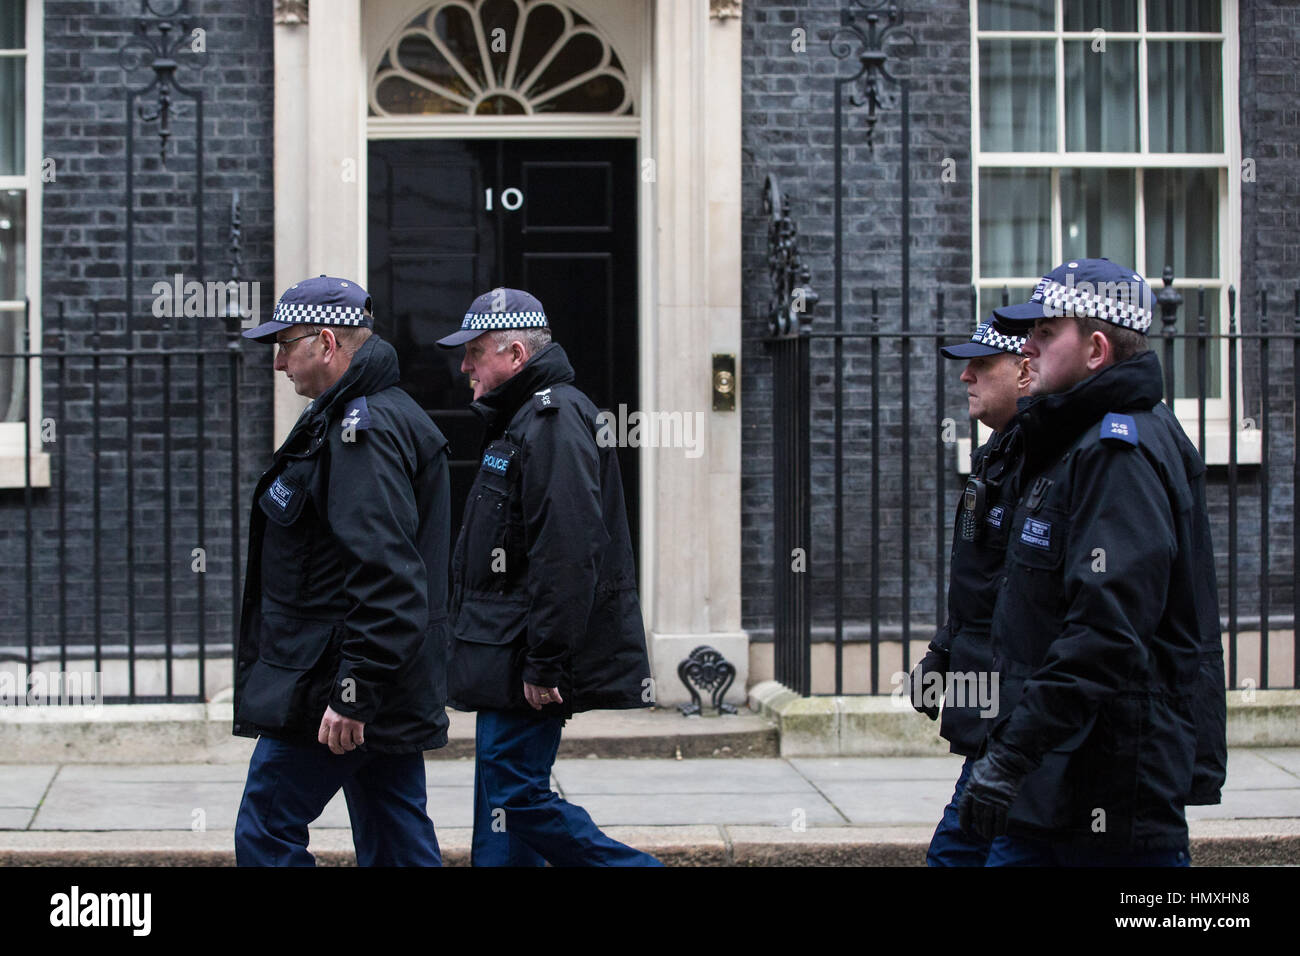 London, UK. 6th February, 2017. Security arrangements in and around Downing Street for the visit of the Prime Minister Stock Photo